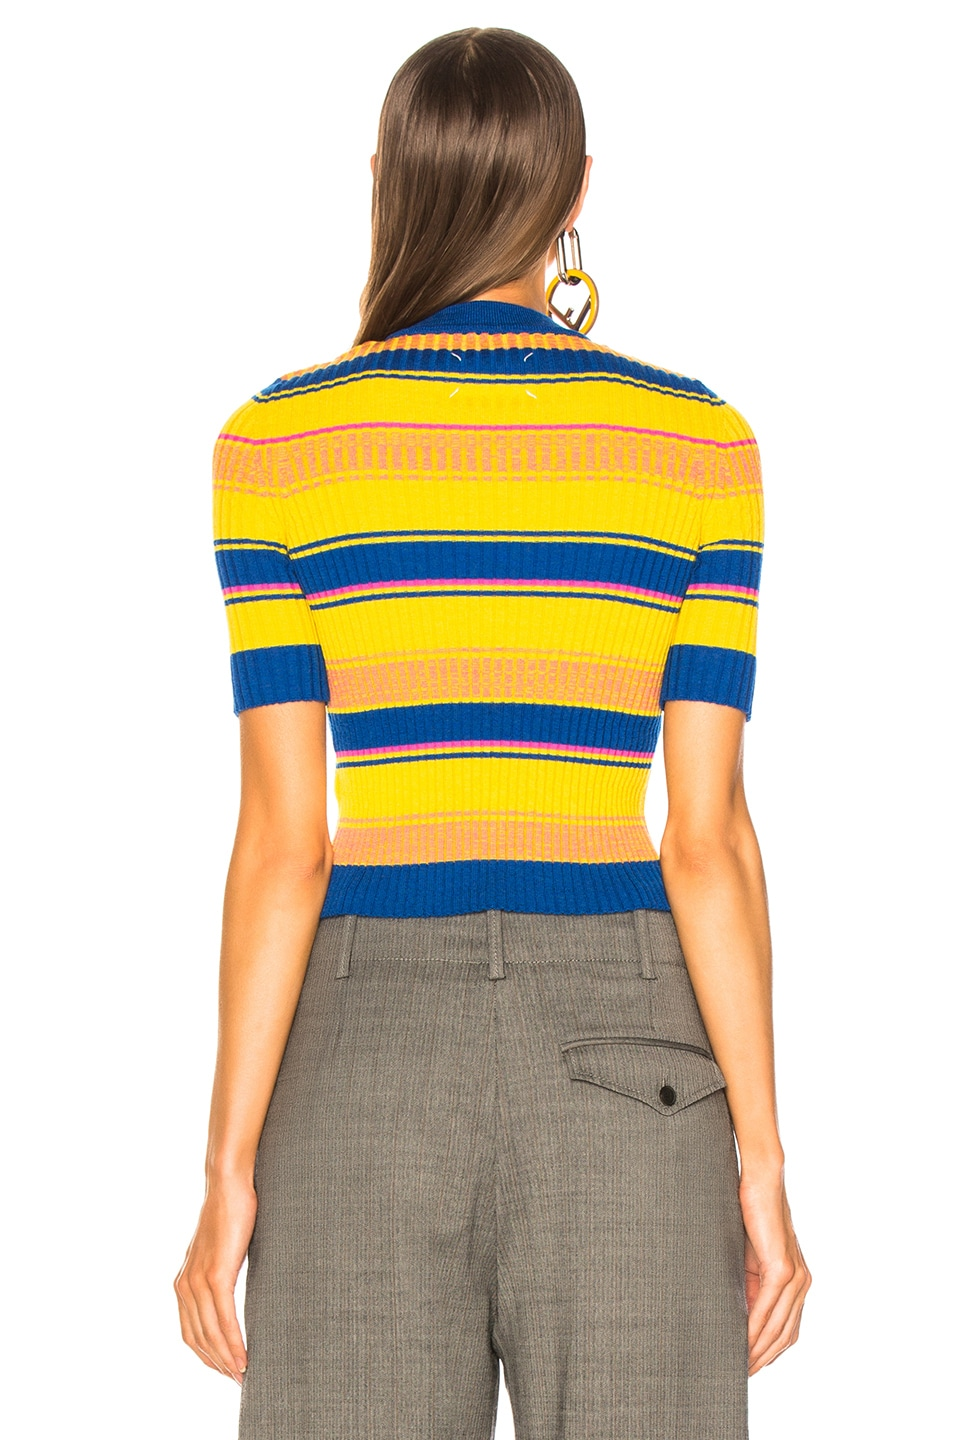 Maison Margiela Striped Short Sleeve Sweater In Blue Yellow